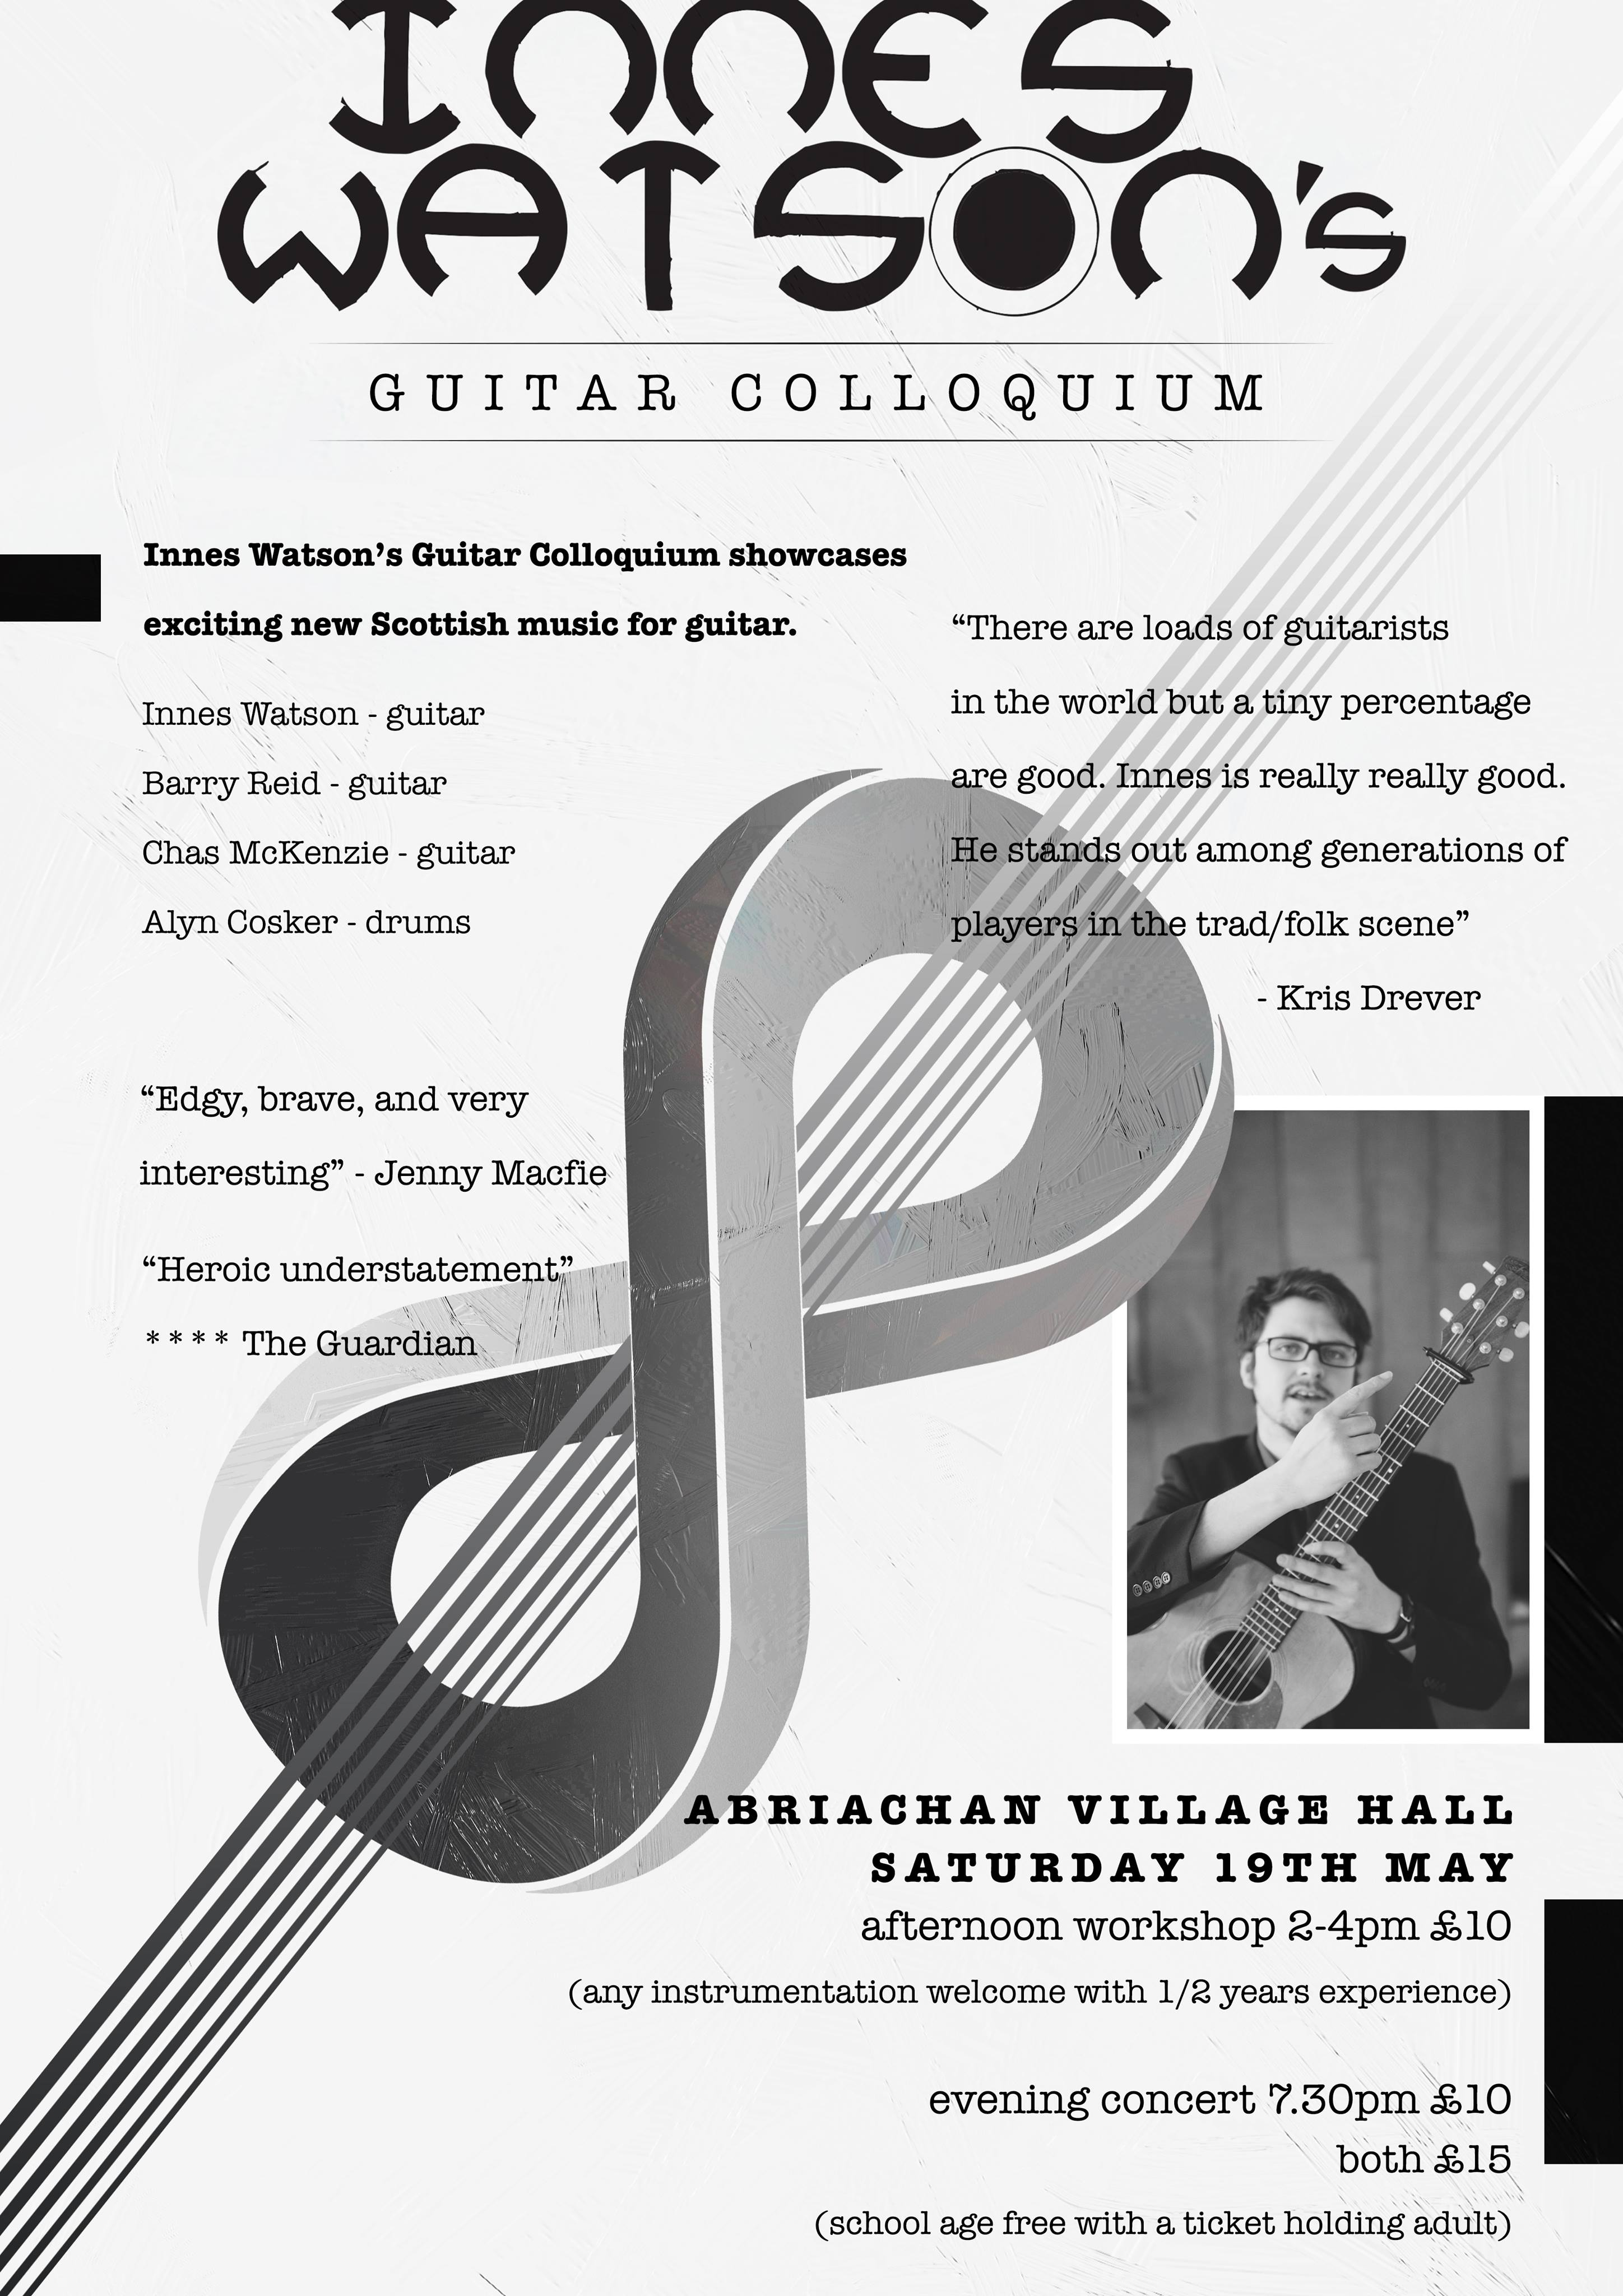 Innes Watson's Guitar Colloquium - Abriachan Village Hall